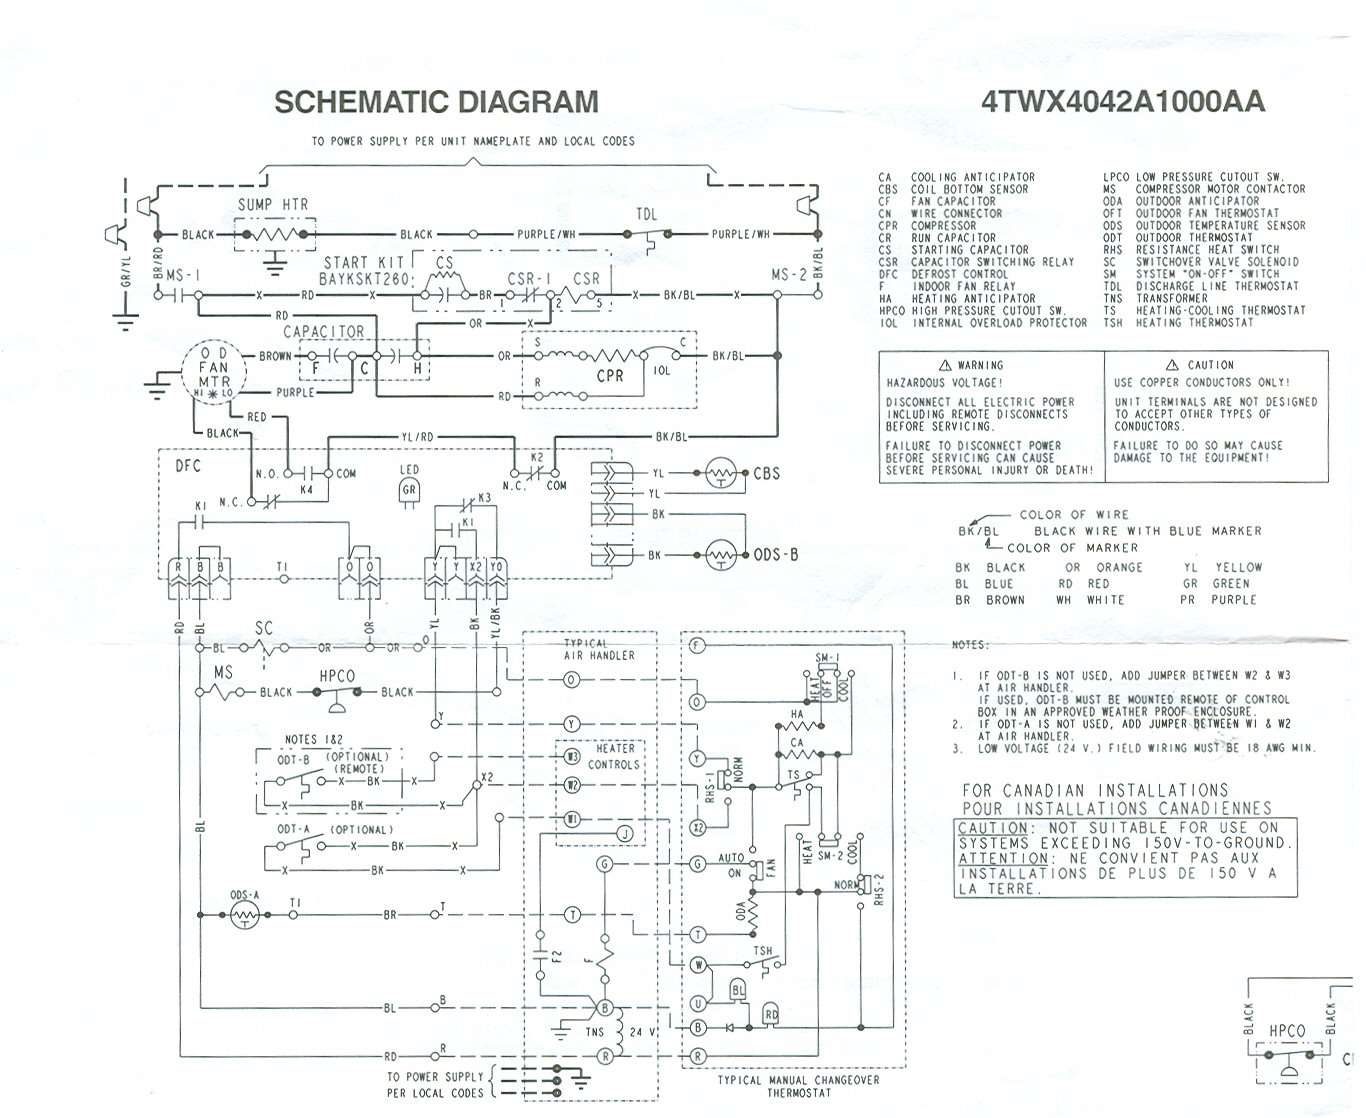 hp correct tstat wiring for xl14, defrost cycle trouble defrost board wiring diagram at reclaimingppi.co